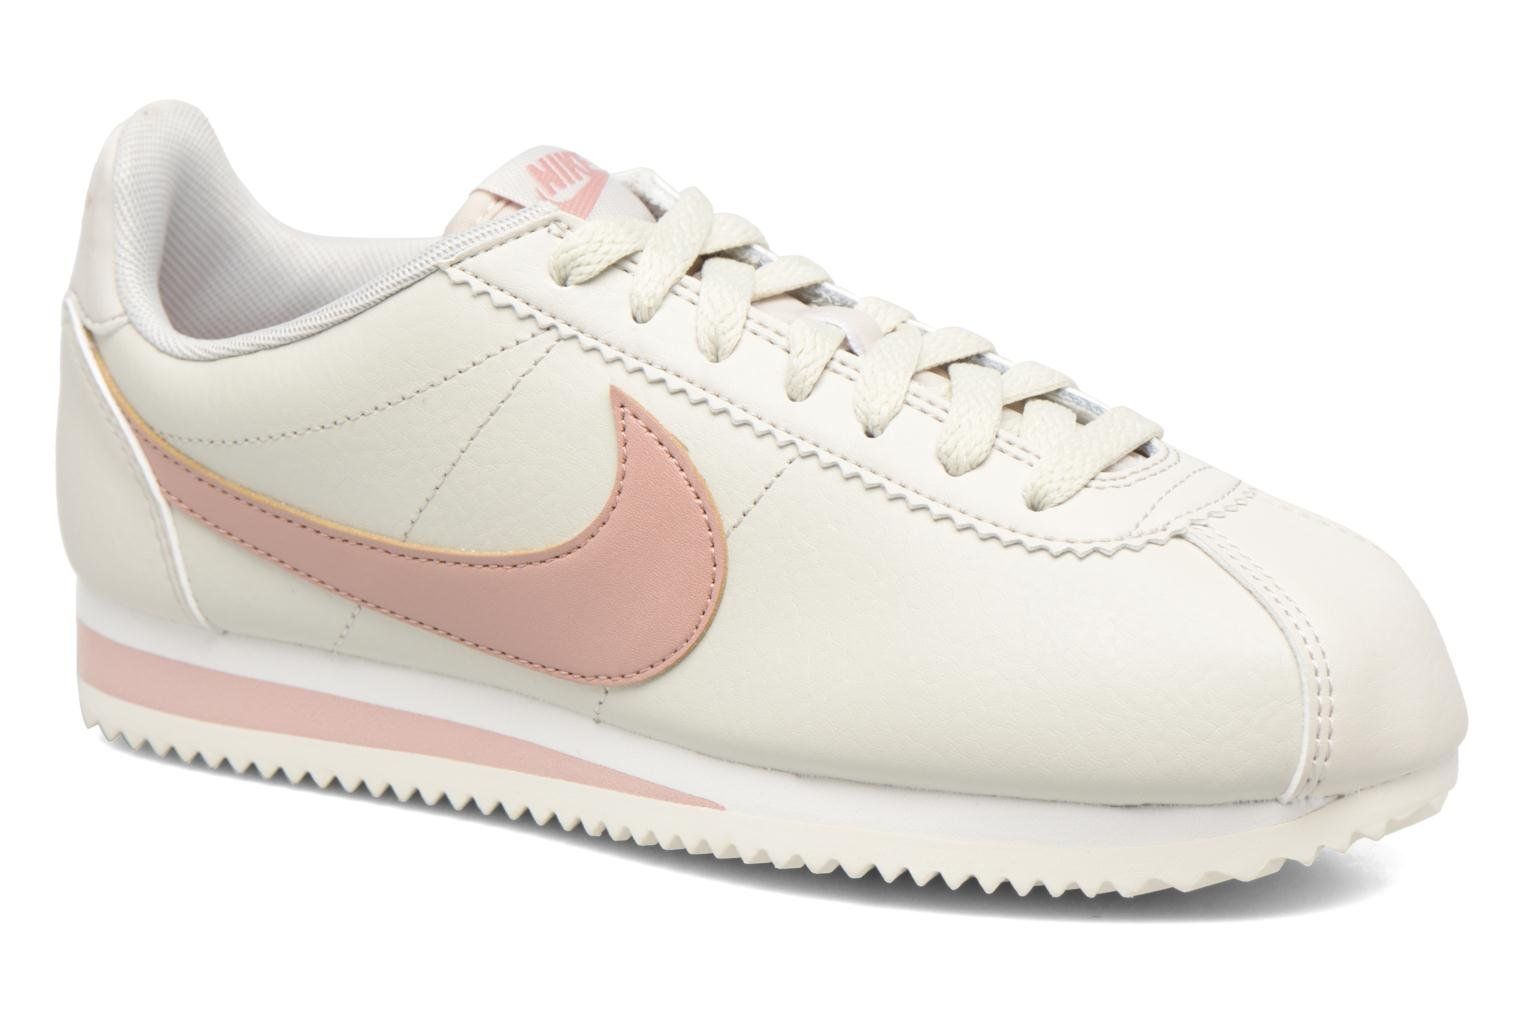 Wmns Classic Cortez Leather Light Bone/Particle Pink-Summit White